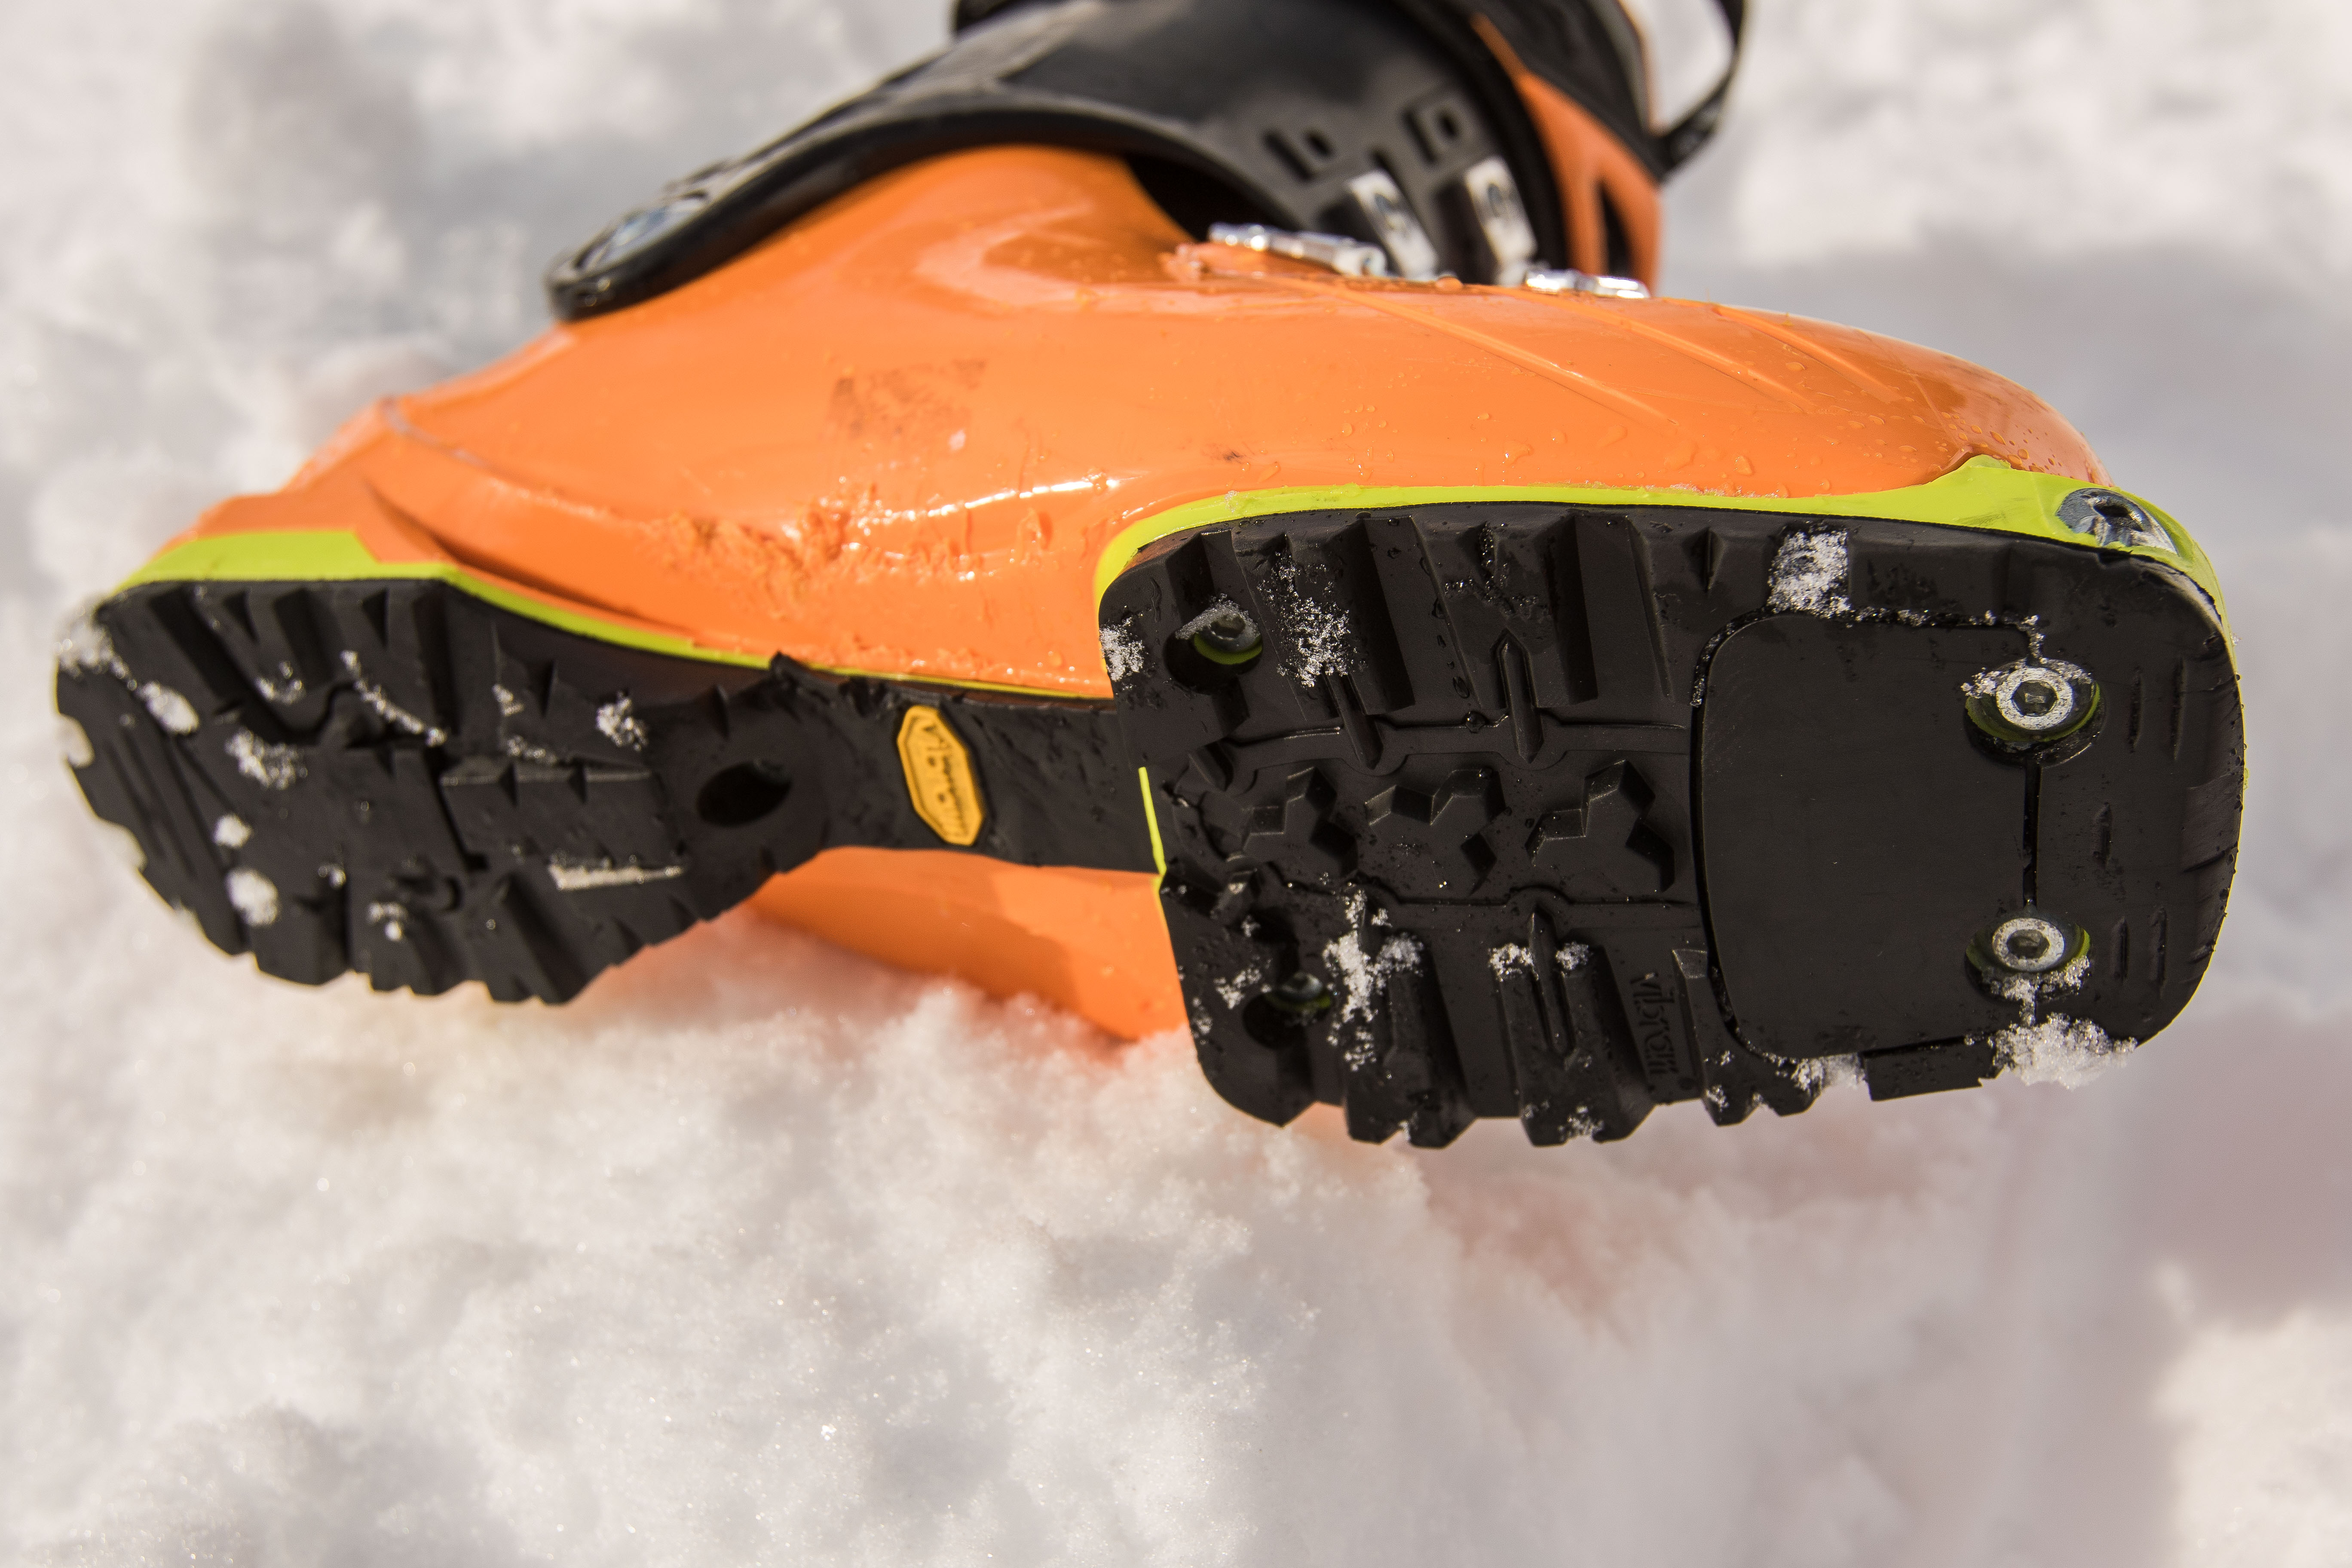 Vibram sole is a major plus. Scuffs after 5 days of sled skiing (not too bad).